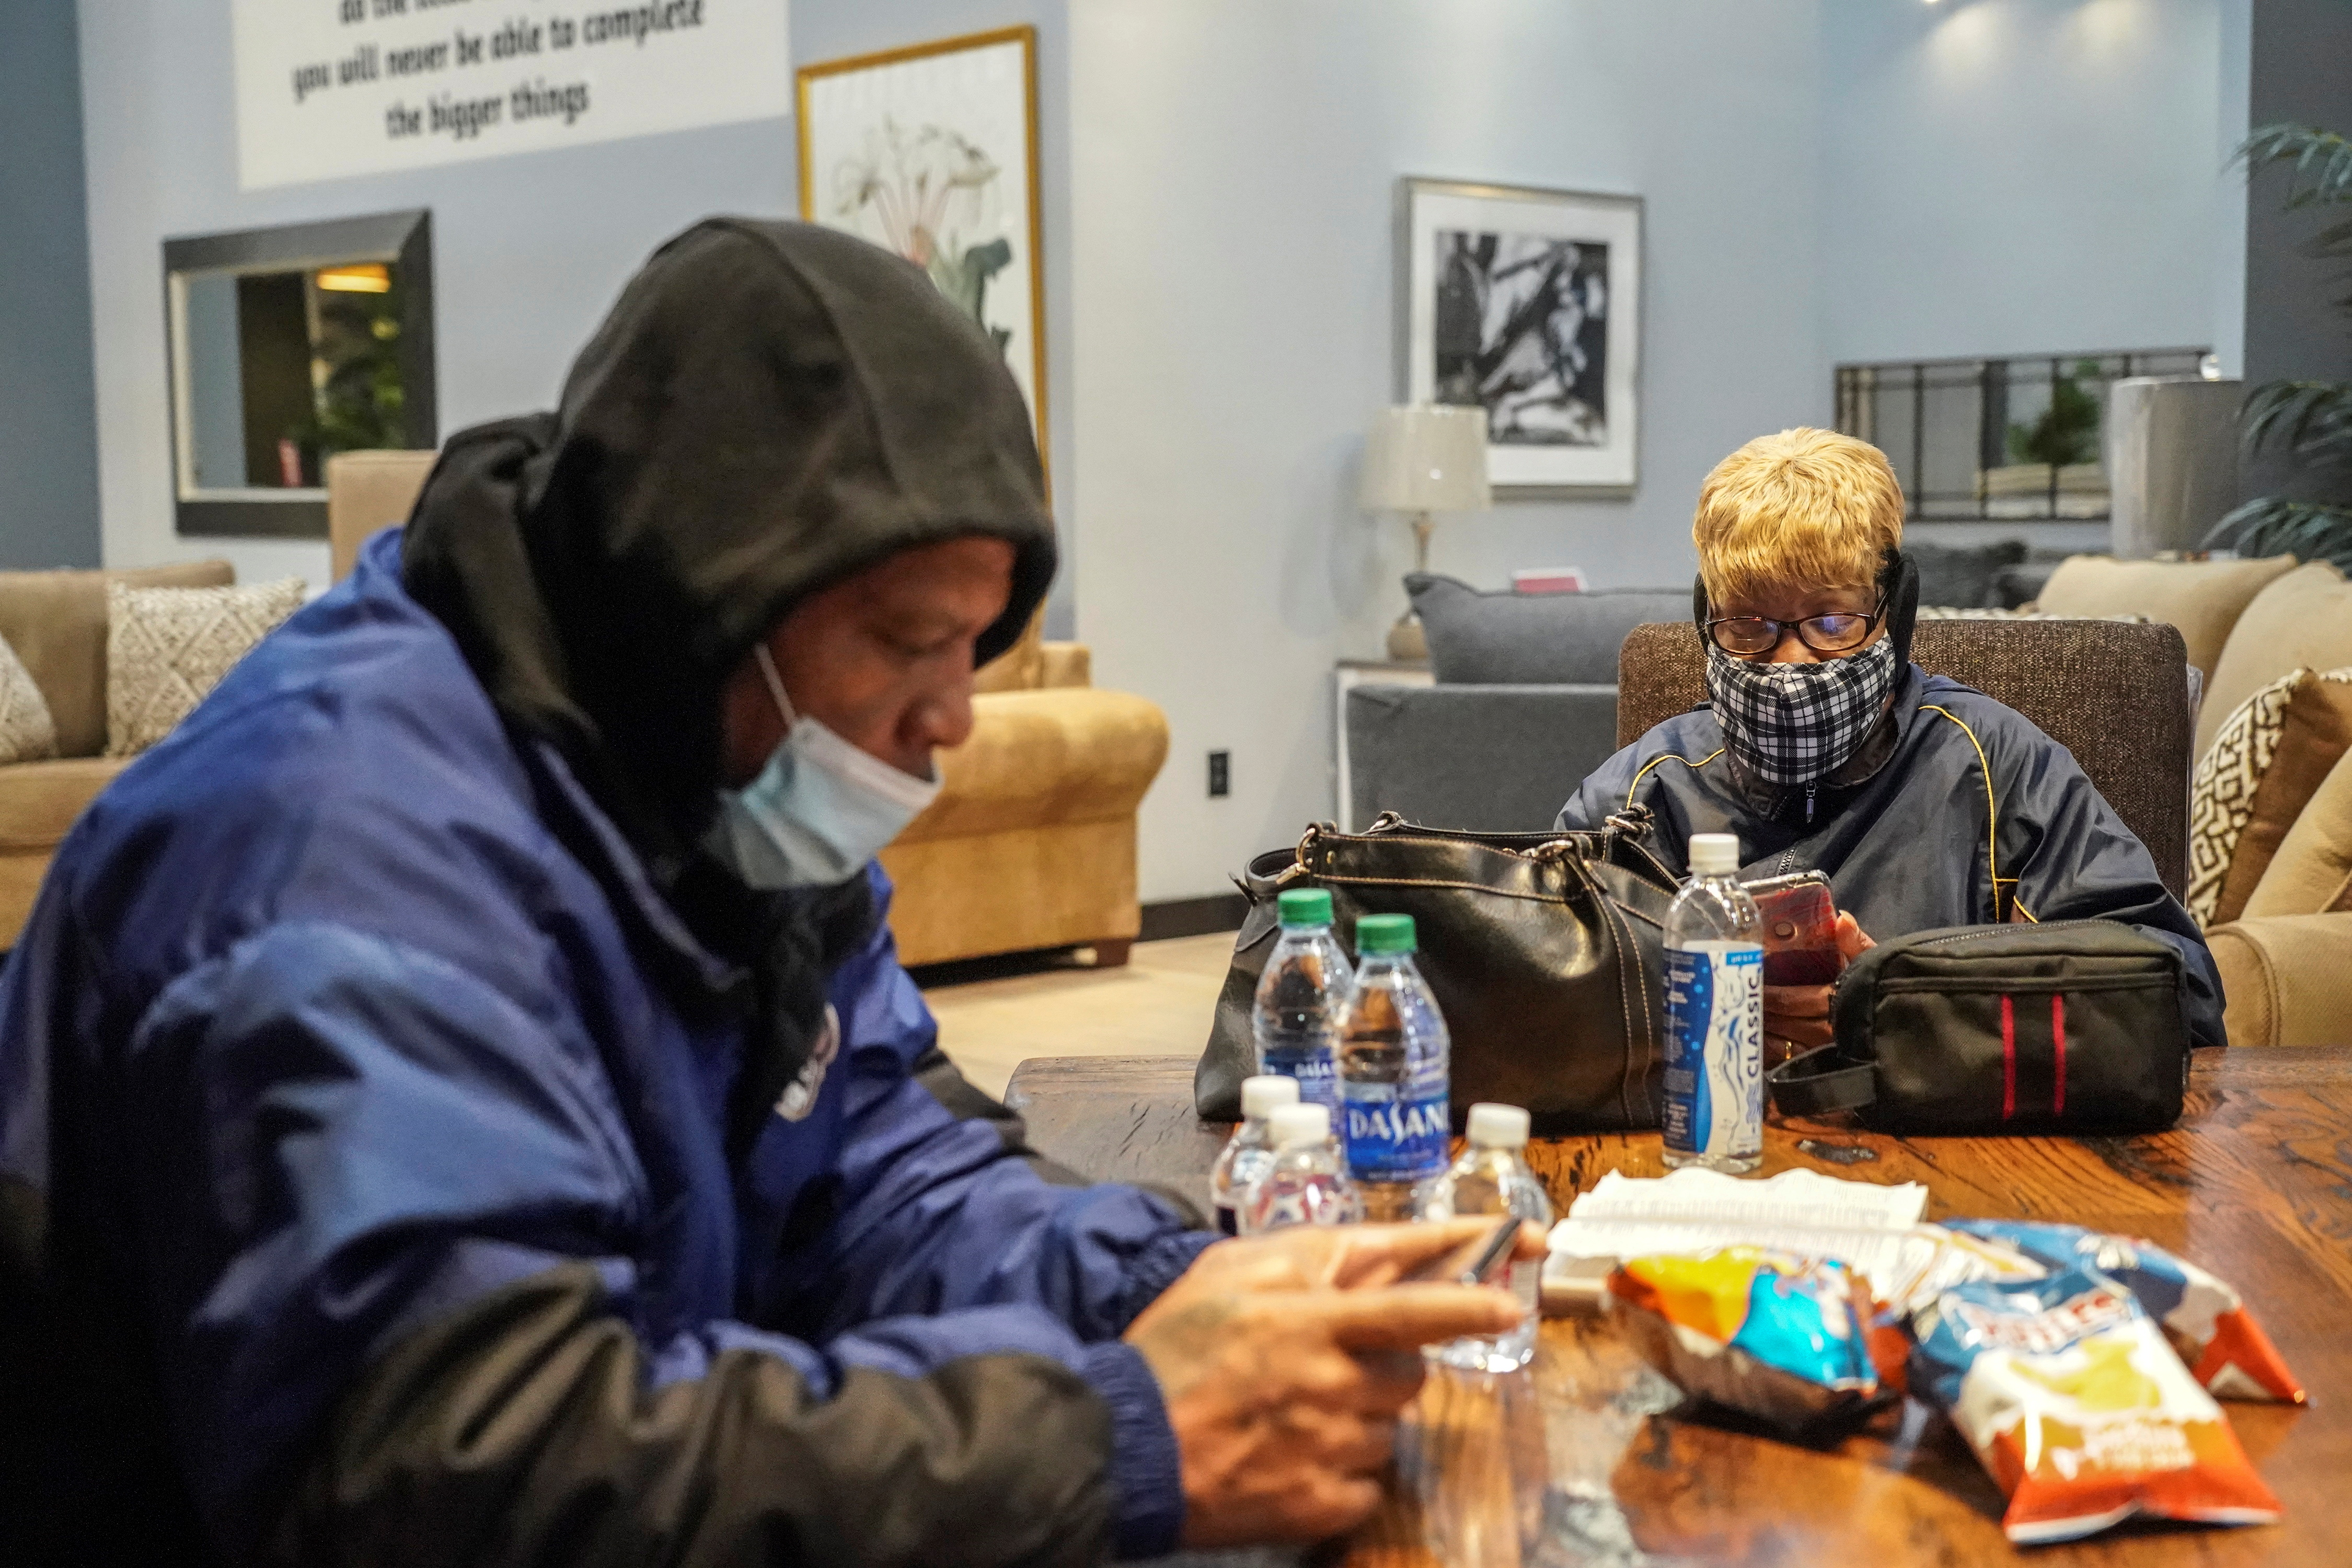 Jason Miszell (L) and his wife Debra Bracey check their smartphones while taking a shelter at Gallery Furniture store which opened its door and transformed into a warming station after winter weather caused electricity blackouts in Houston, Texas, U.S. February 17, 2021.  REUTERS/Go Nakamura